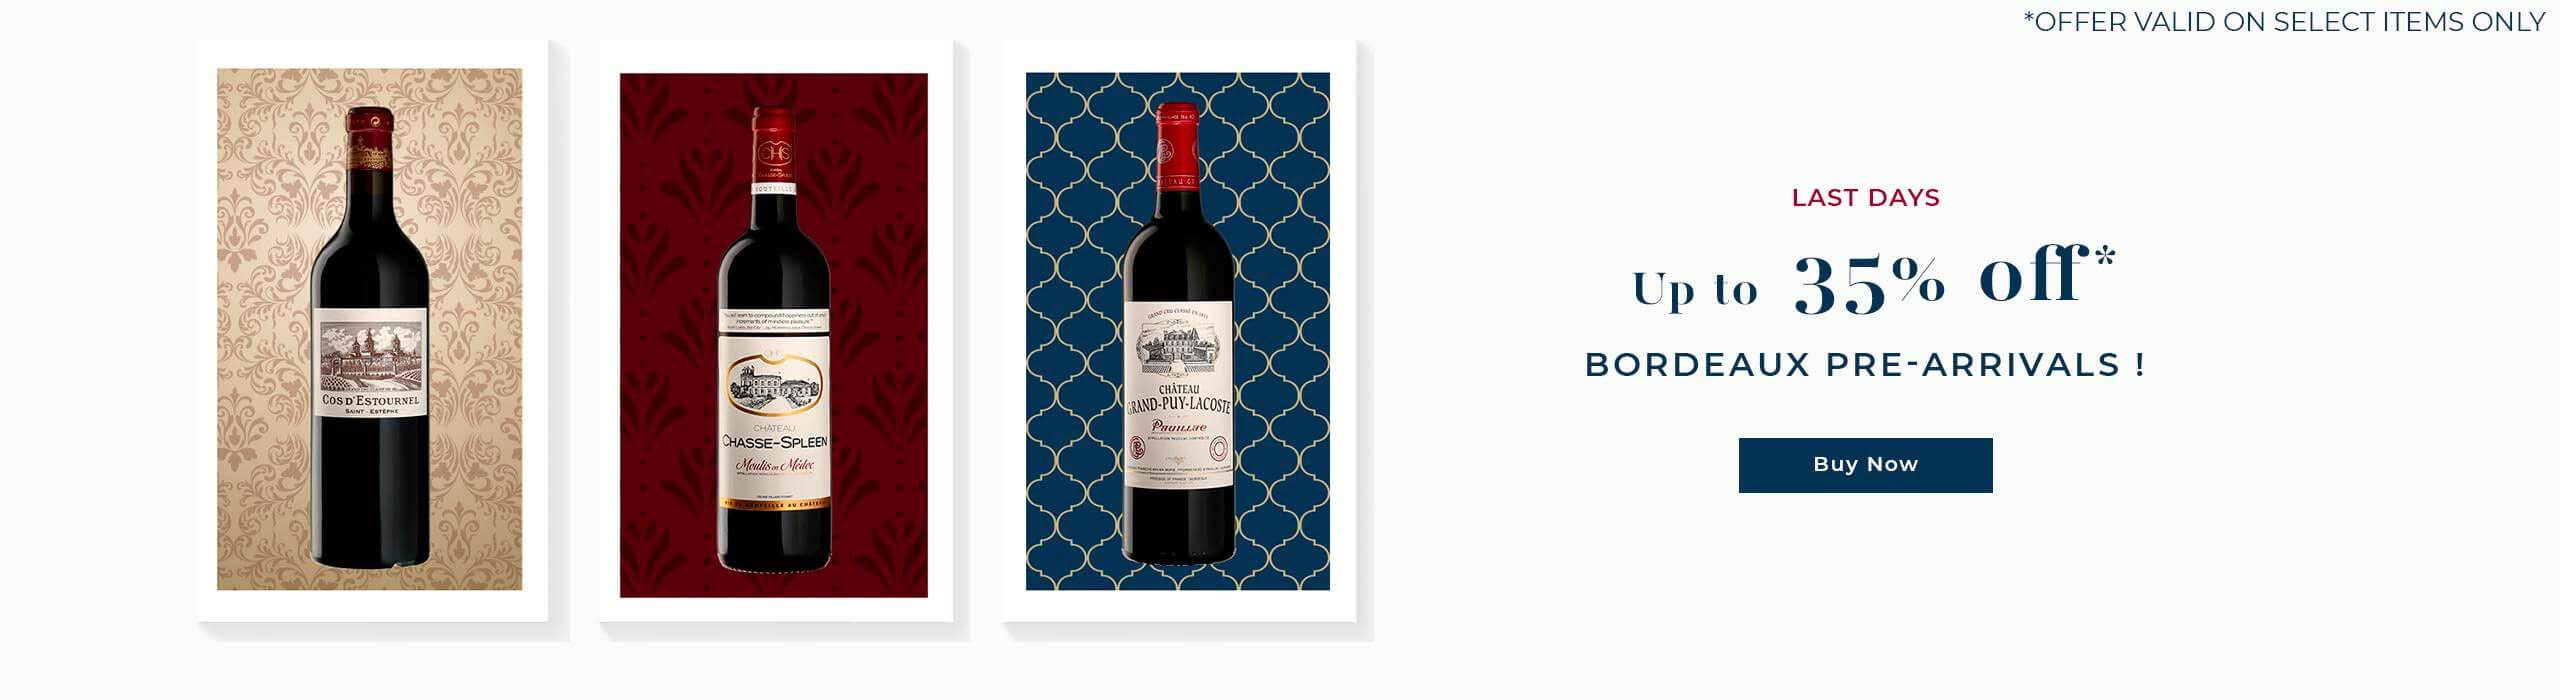 Discover a new special and enjoy up to 35% off Bordeaux Pre-Arrivals !